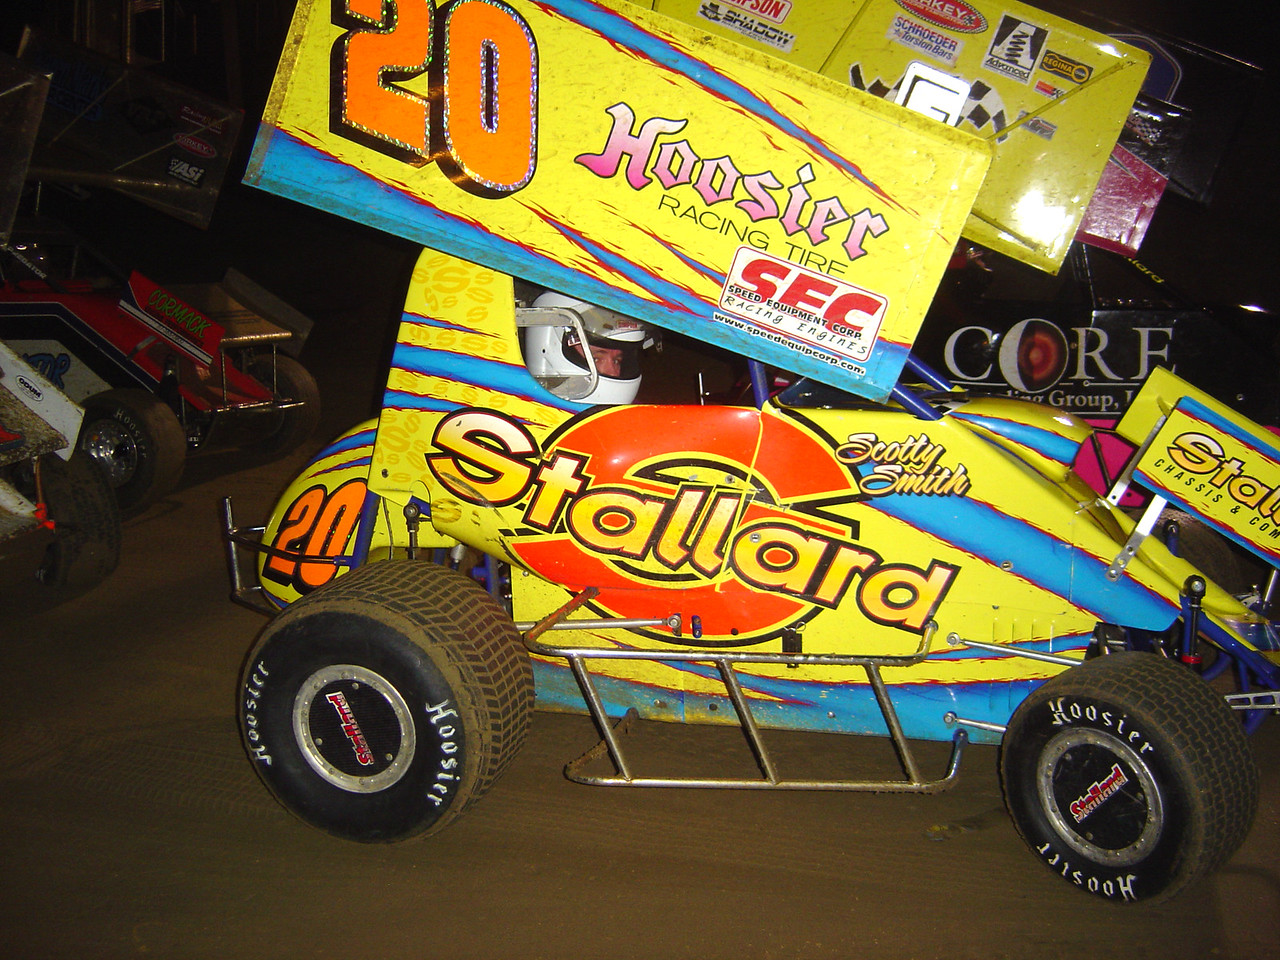 #20 mini sprint Scotty Smith from Middletown, Delaware